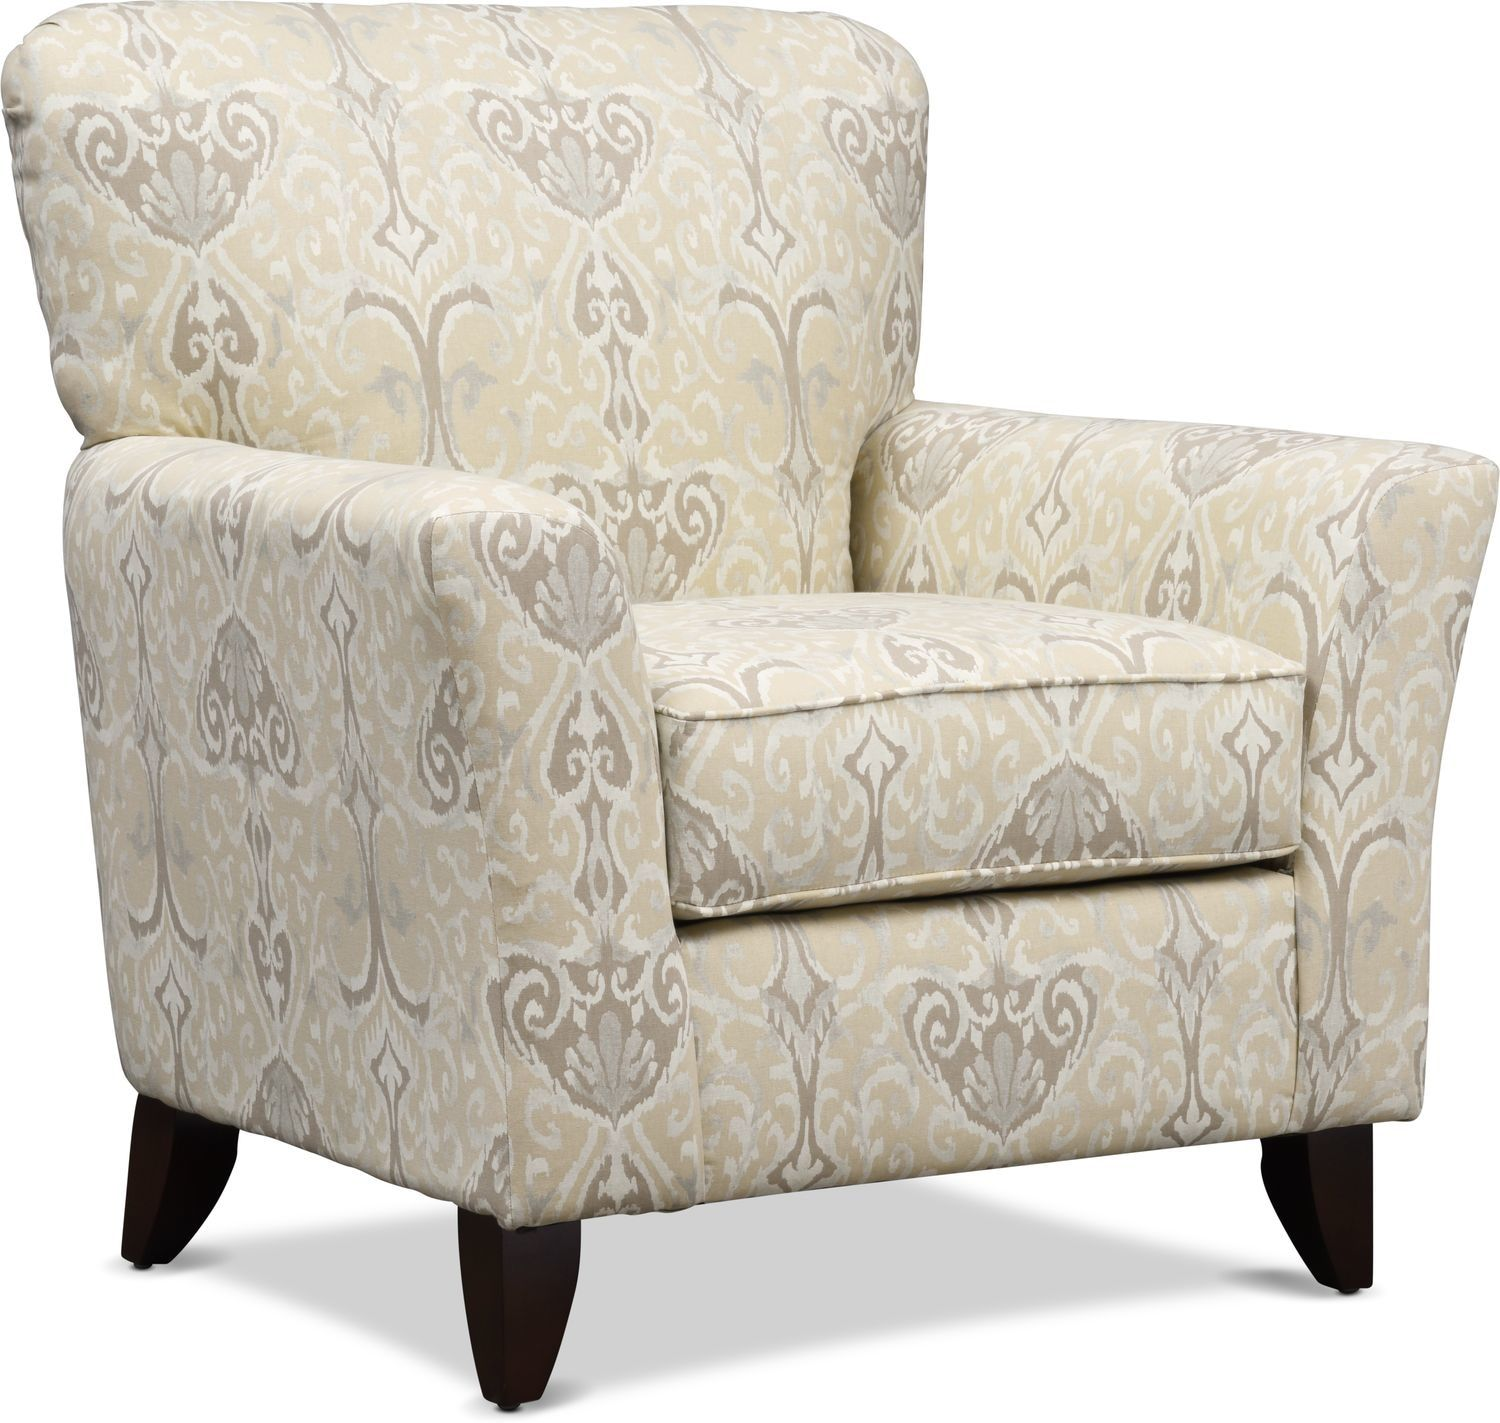 Carla Accent Chair Value City Furniture Accent Chairs Furniture #value #city #living #room #chairs